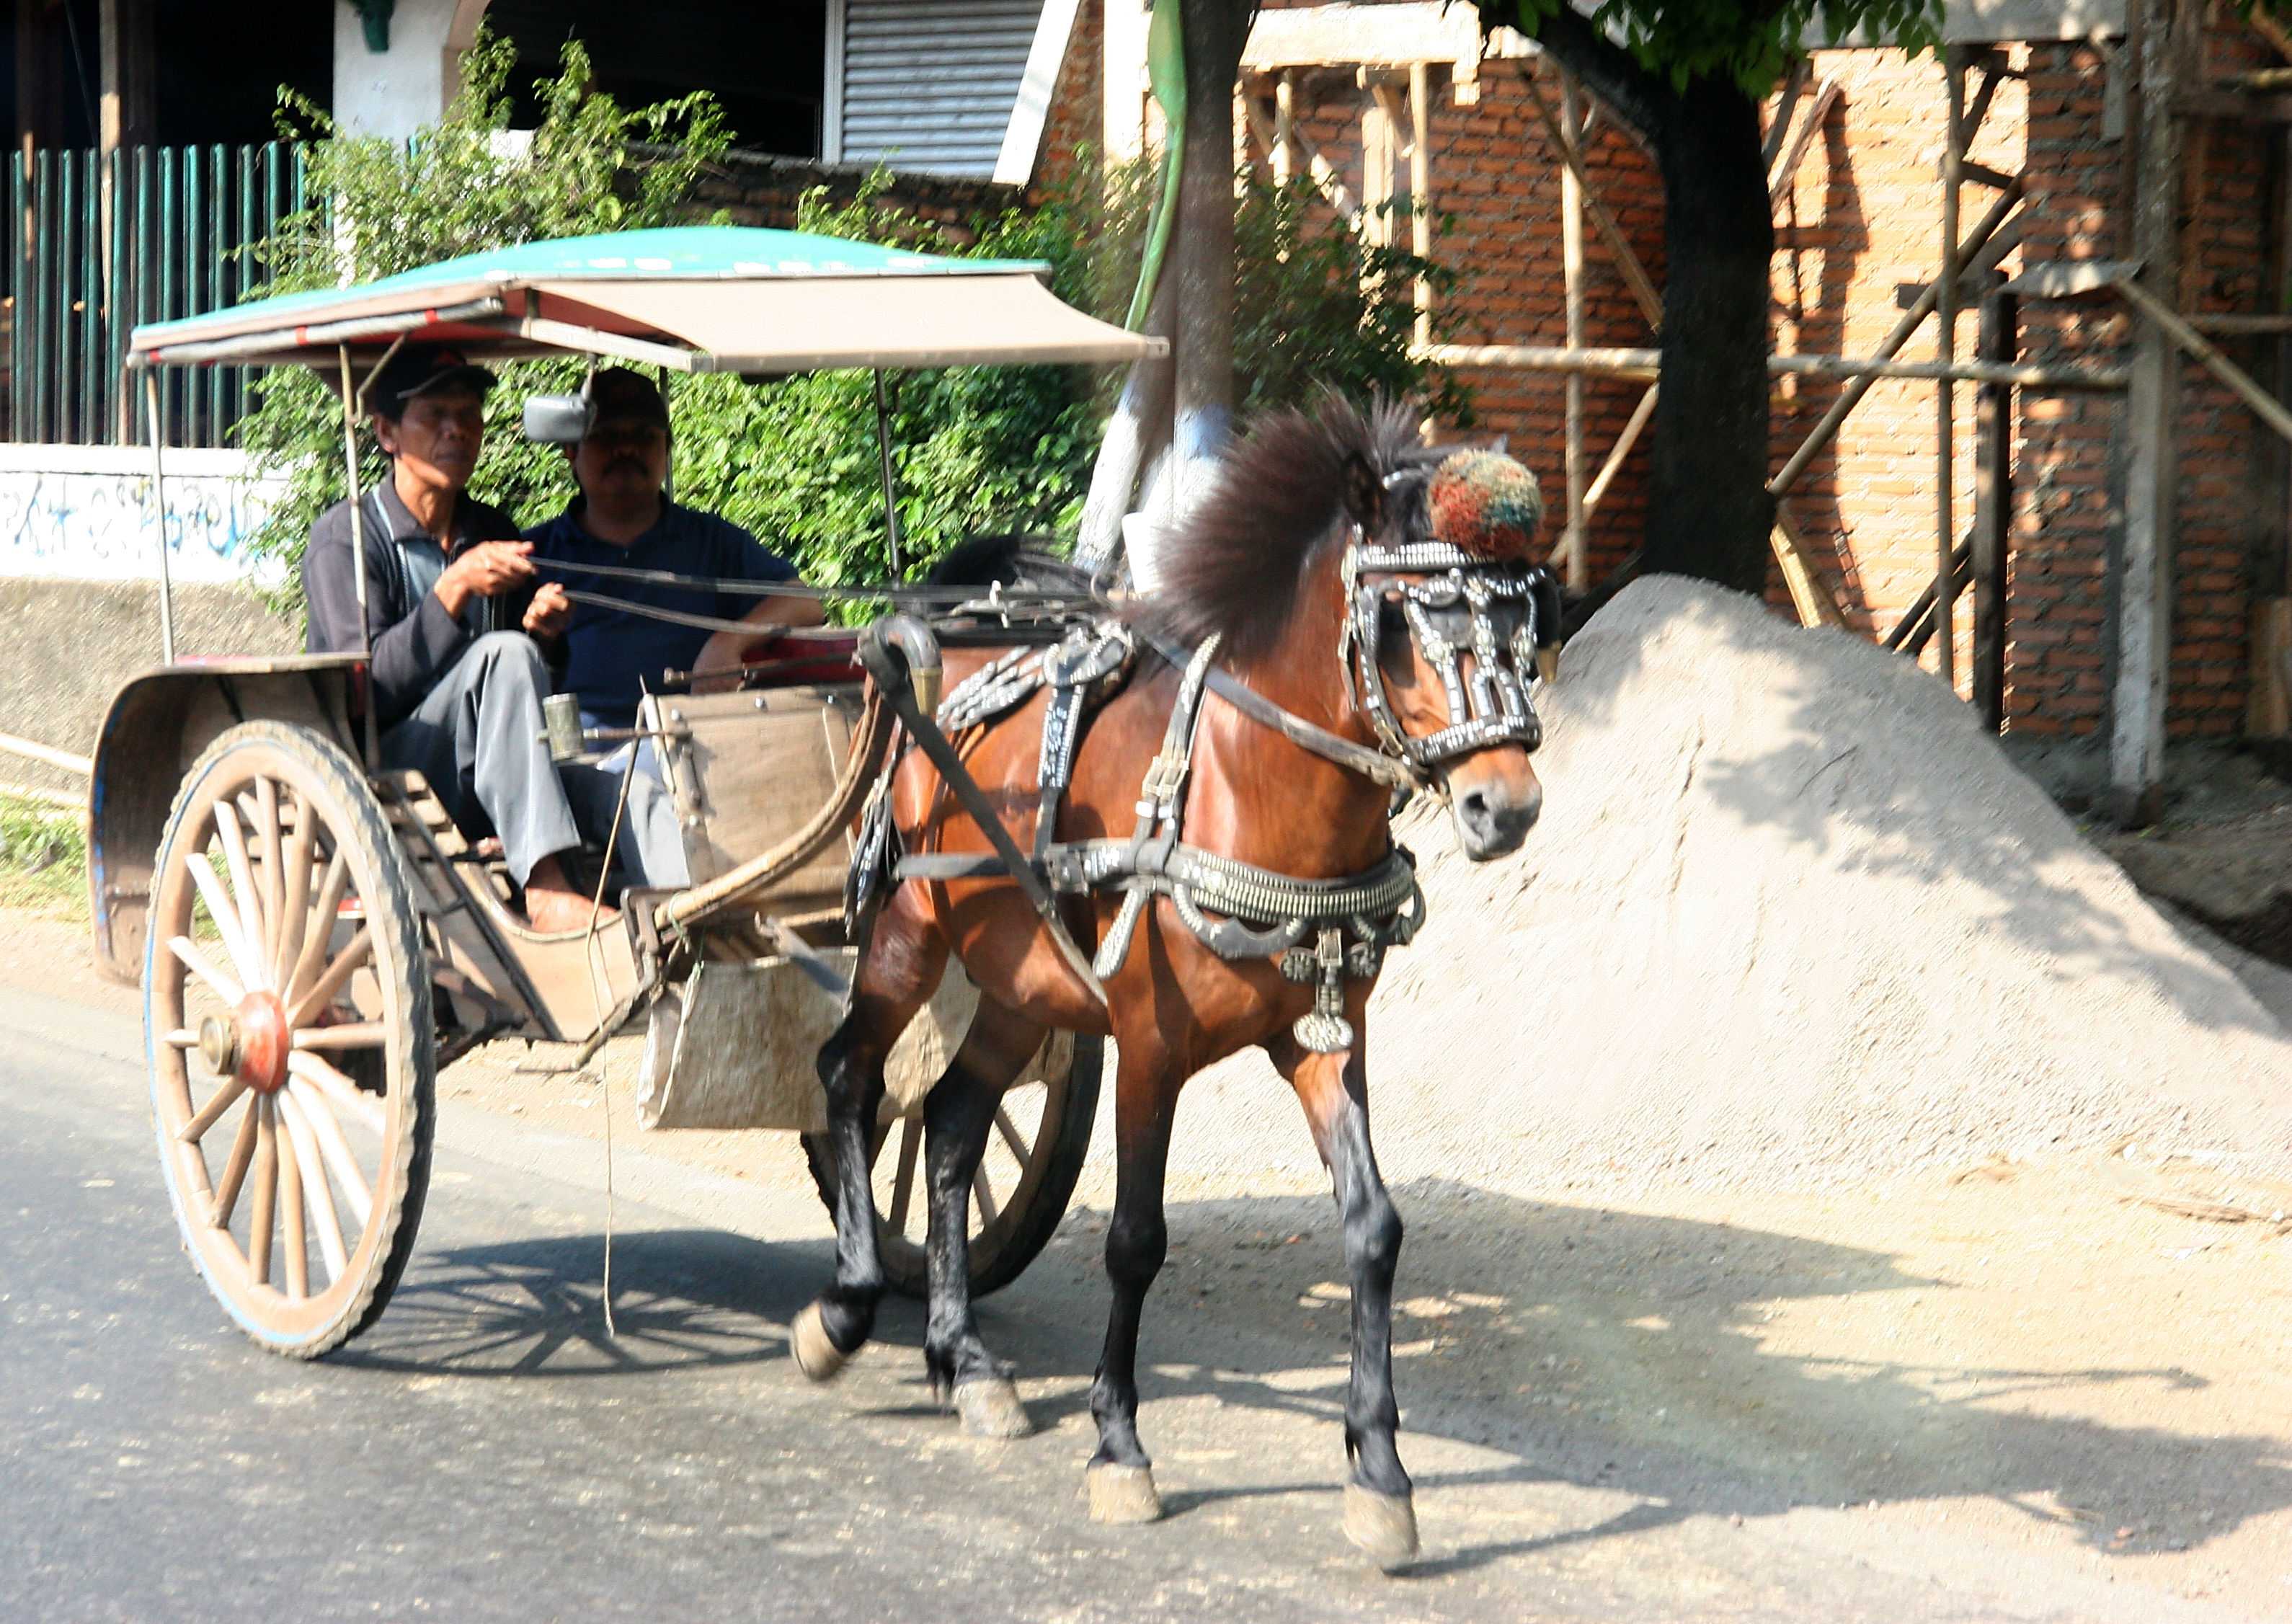 Horse-drawn carriage, Java Indonesia.jpg